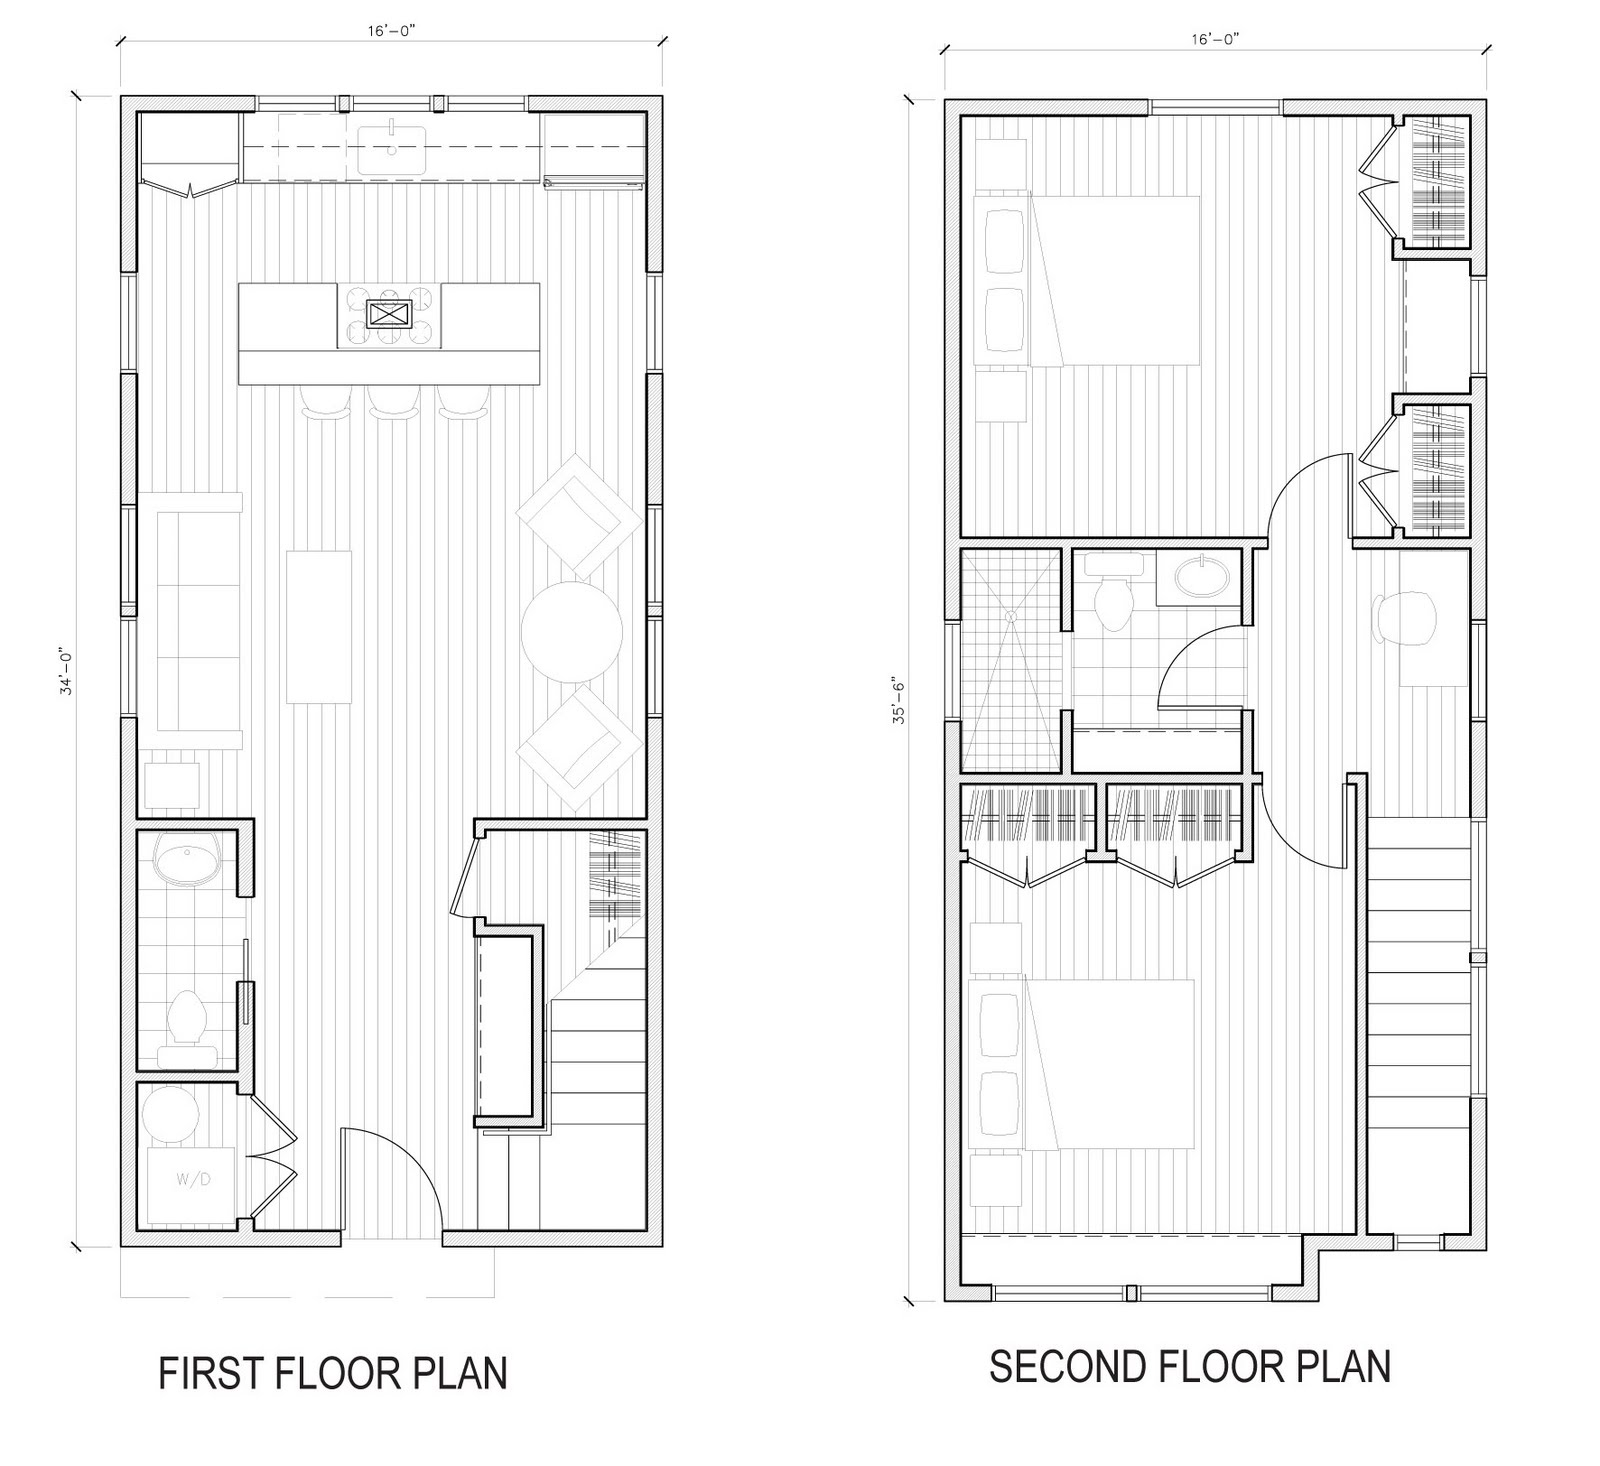 1000 sq ft house plans with loft joy studio design for Home designs 1000 sq ft